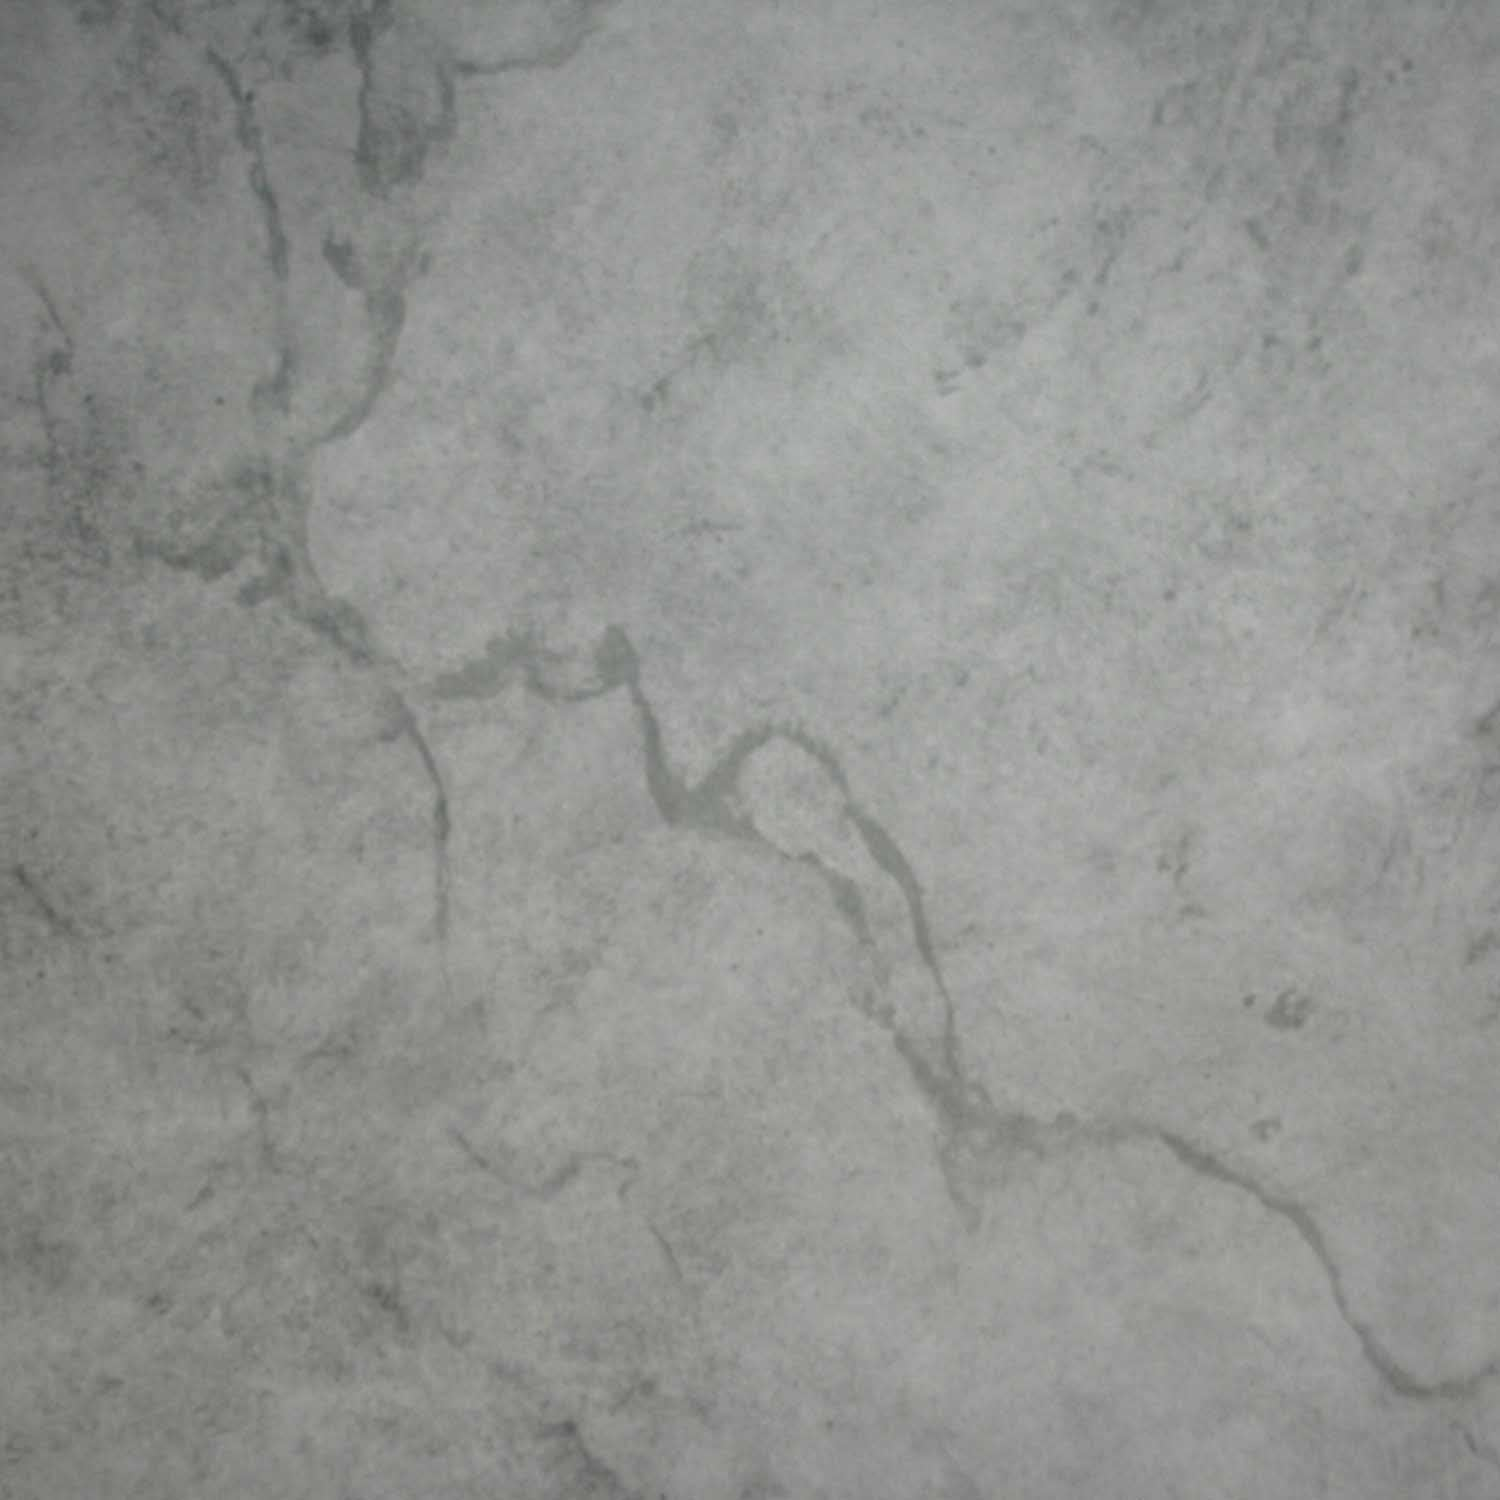 Cool Wallpaper Marble Text - marble_effect_wallpaper_in_charcoal_and_grey_2  Photograph_67726.jpg?v\u003d1516372826